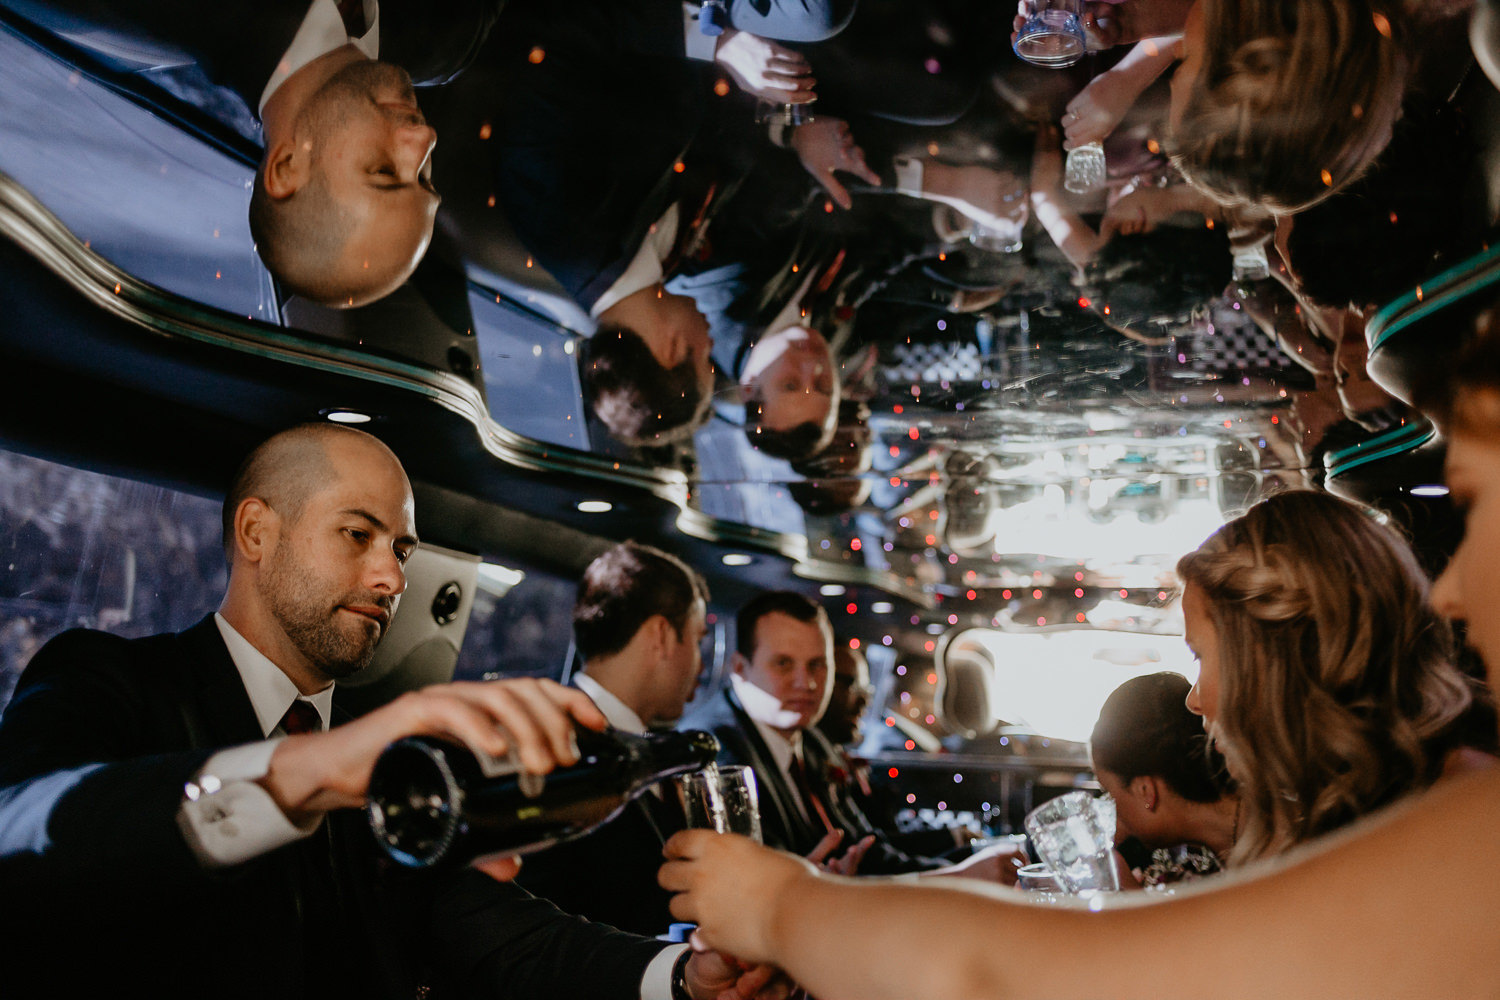 pouring champagne inside the limousine